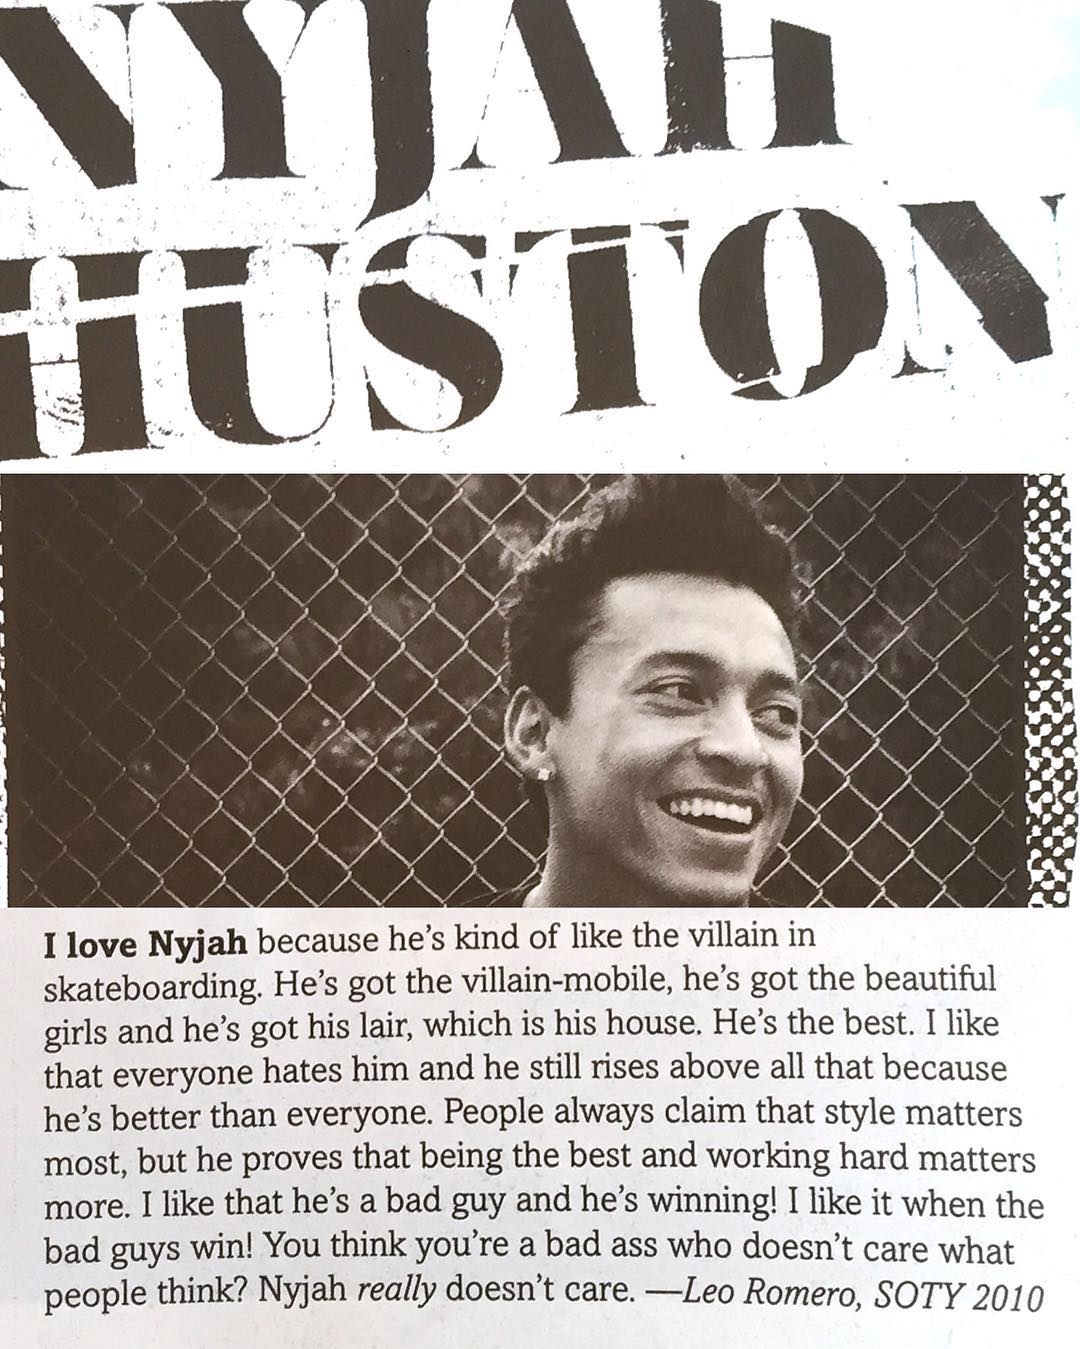 #soty2010 @_travesura nails it in the latest @thrashermag >>> and just like bruce wayne, @nyjah is a soulful dude loved by those that know him well, keep killing it Ny >>> #riseup #nyjahhuston